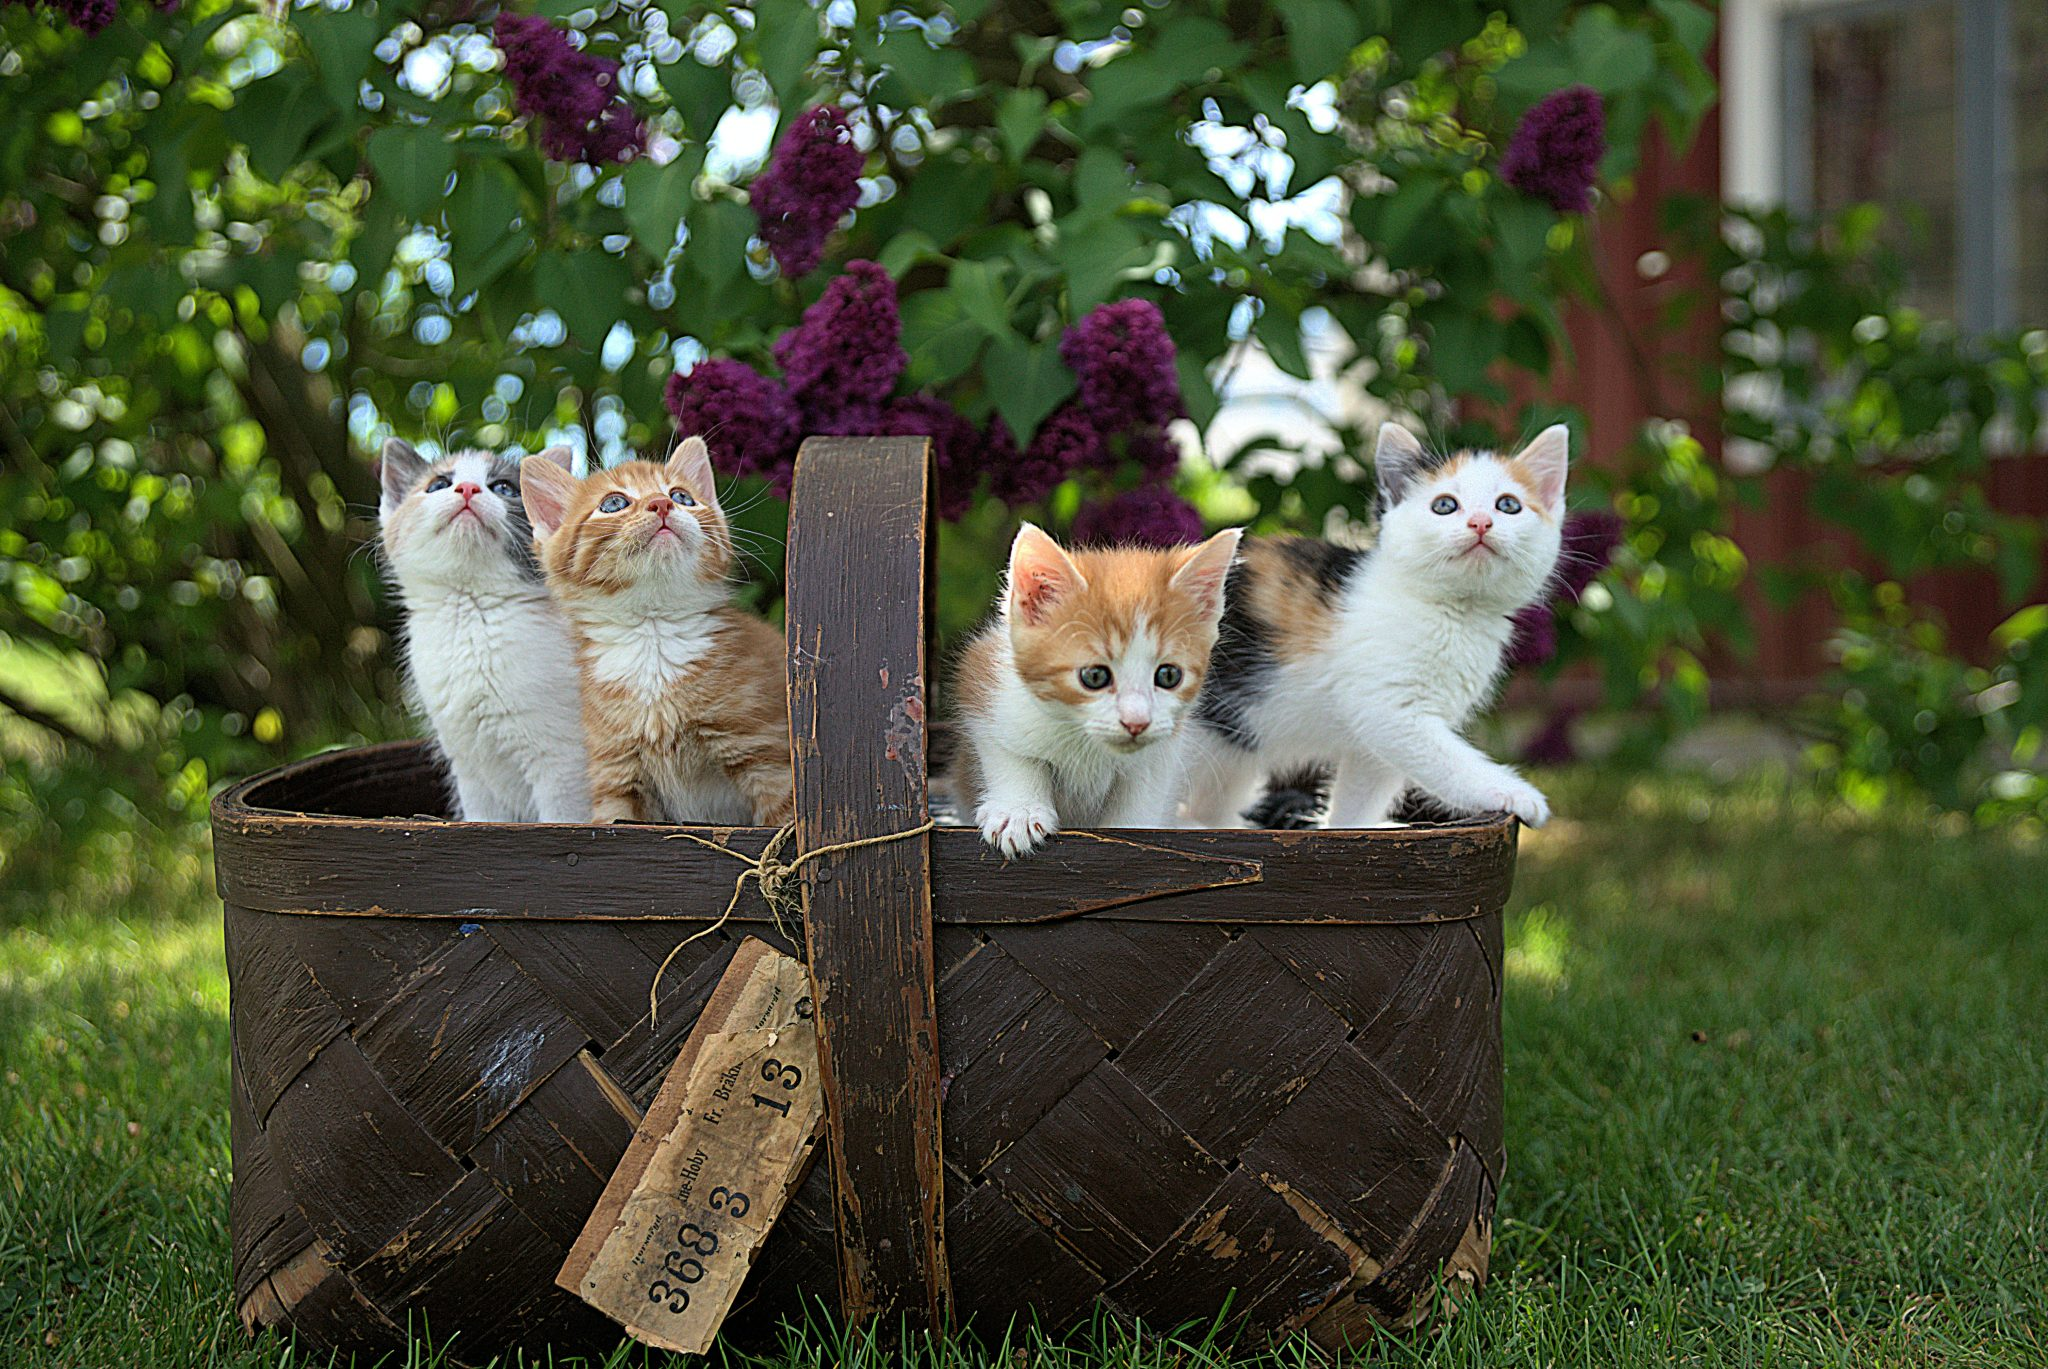 picture of kittens in a basket